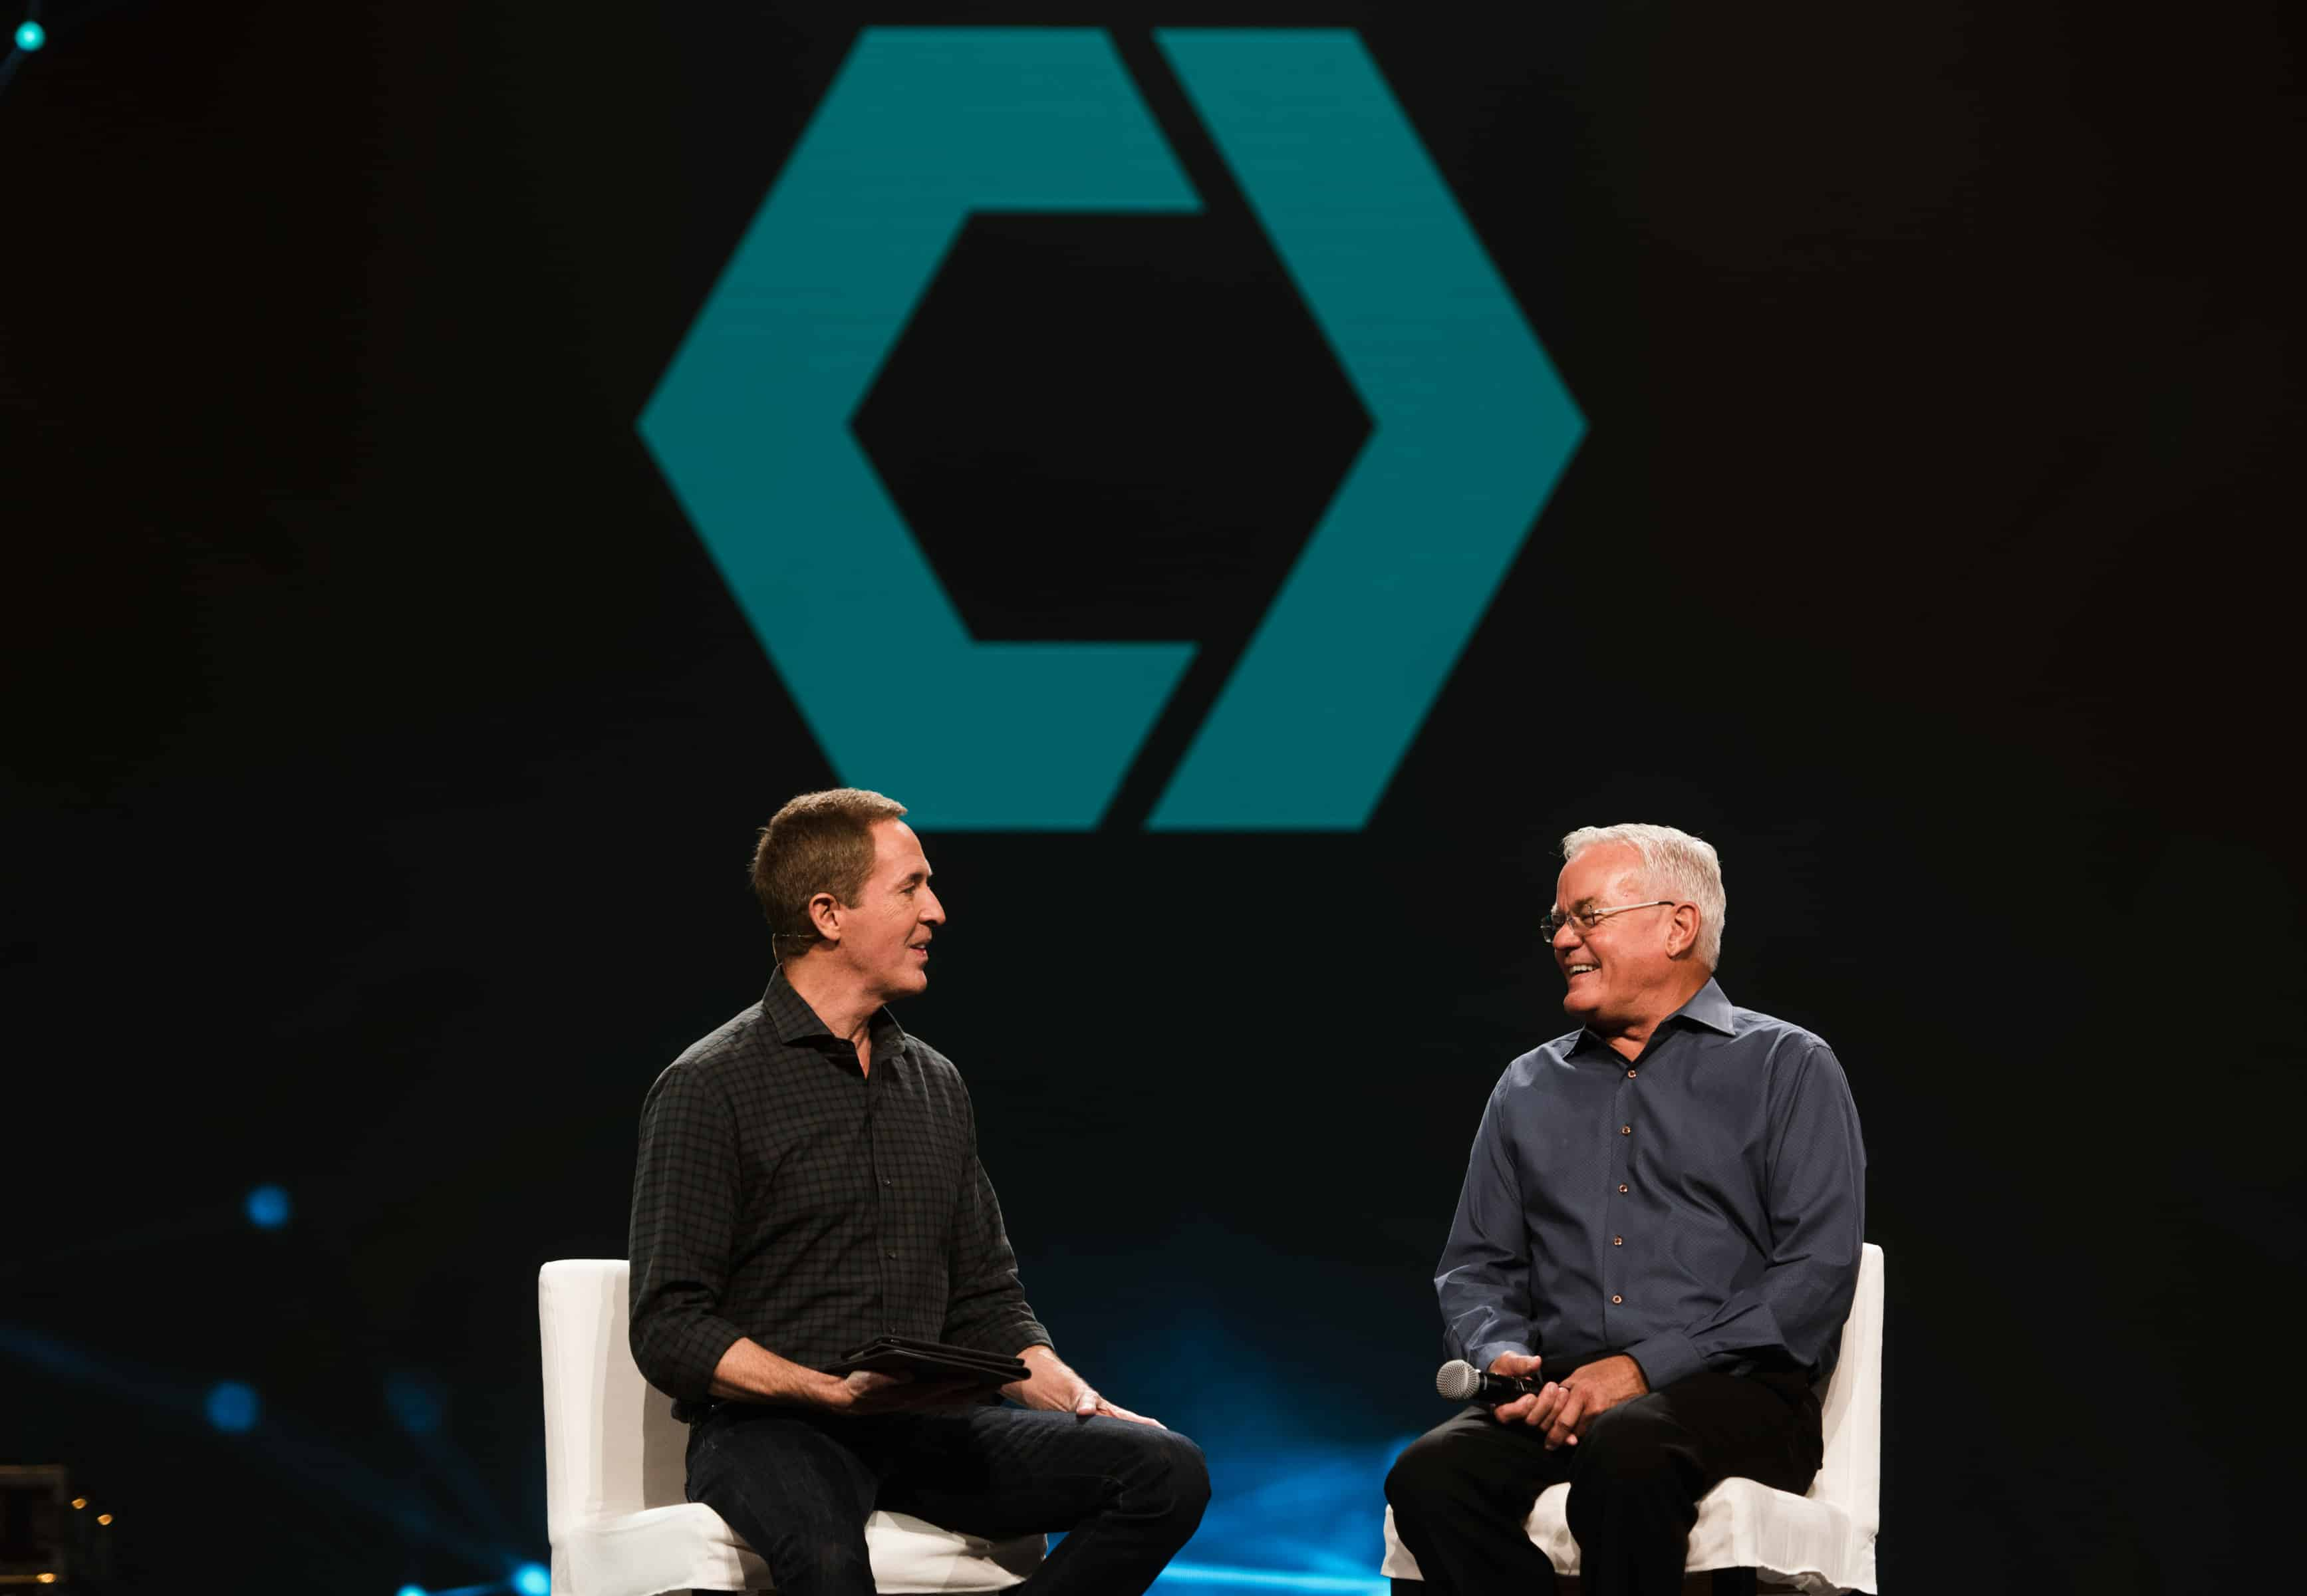 Leadership lessons from Andy Stanley and Bill Hybels